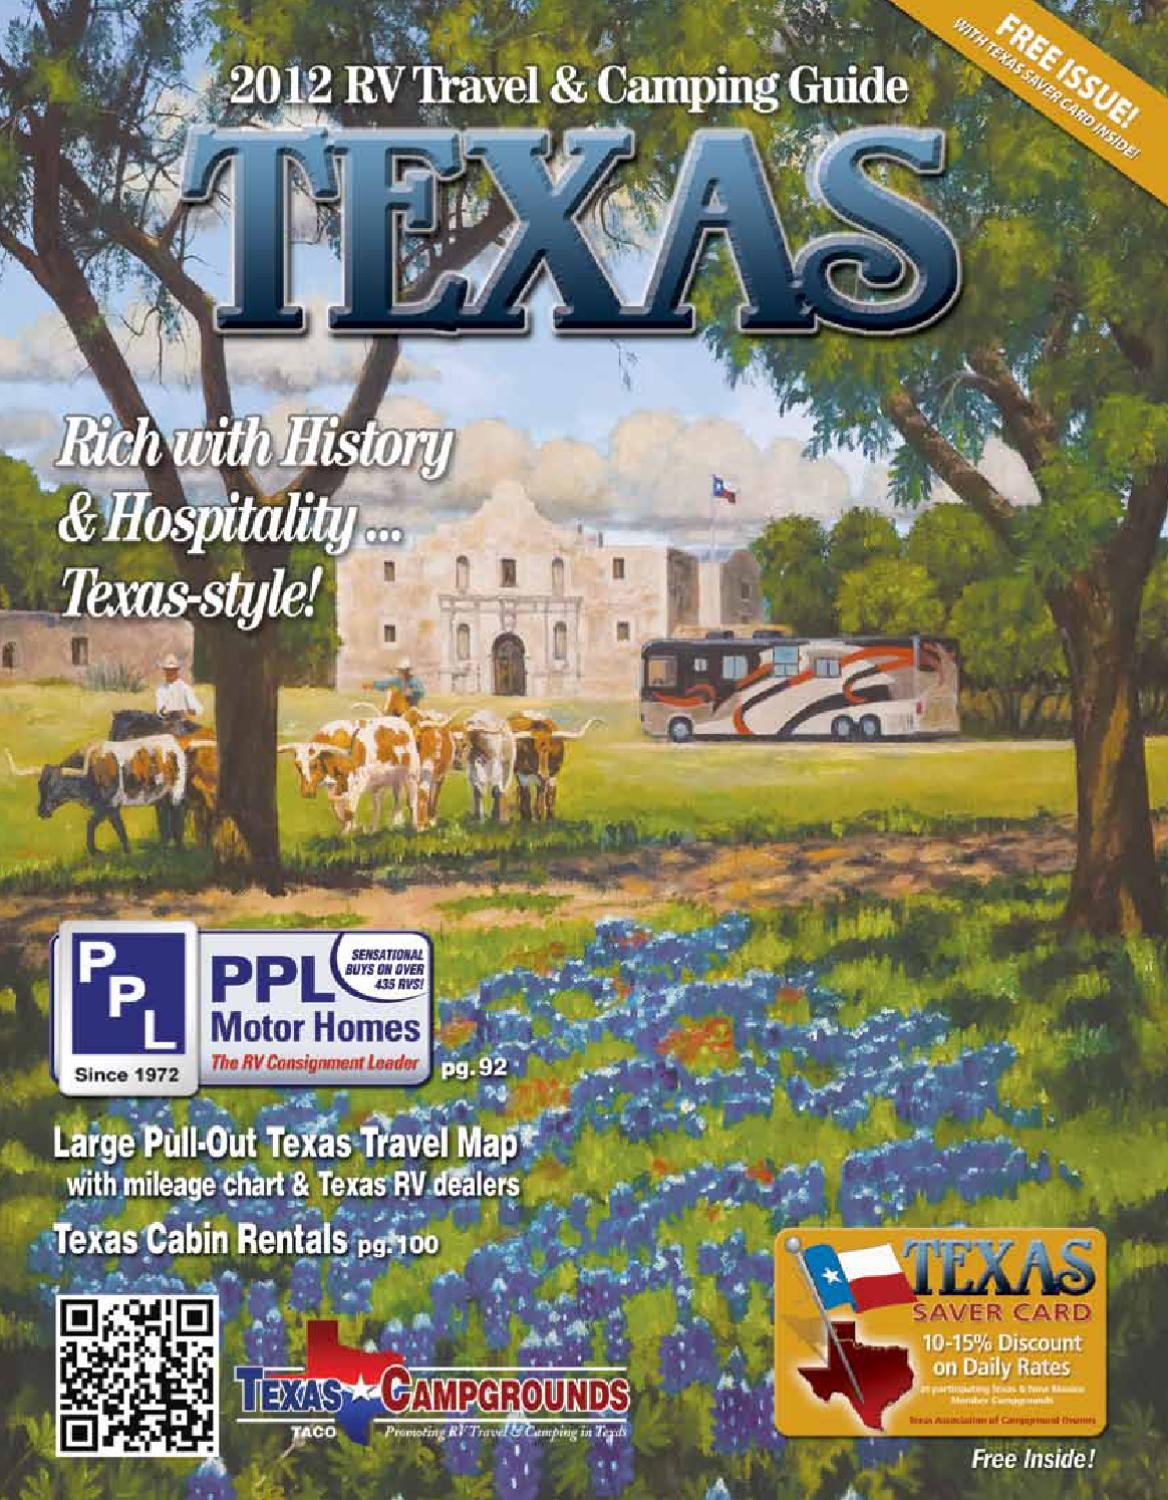 2012 Texas RV Travel & Camping Guide by AGS/Texas